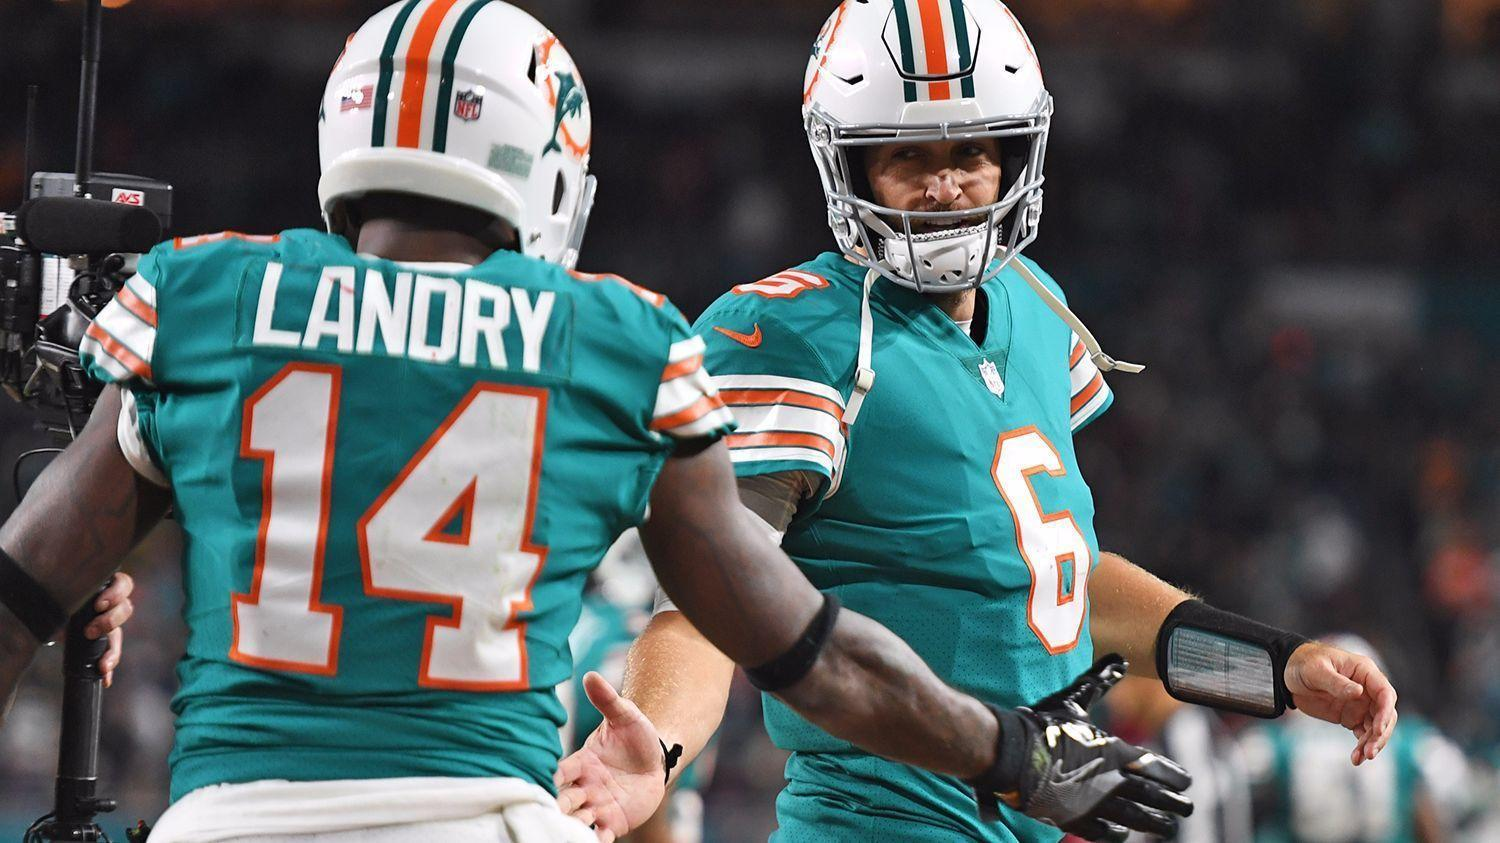 Fl-sp-hyde10-dolphins-patriots-thoughts-20171211